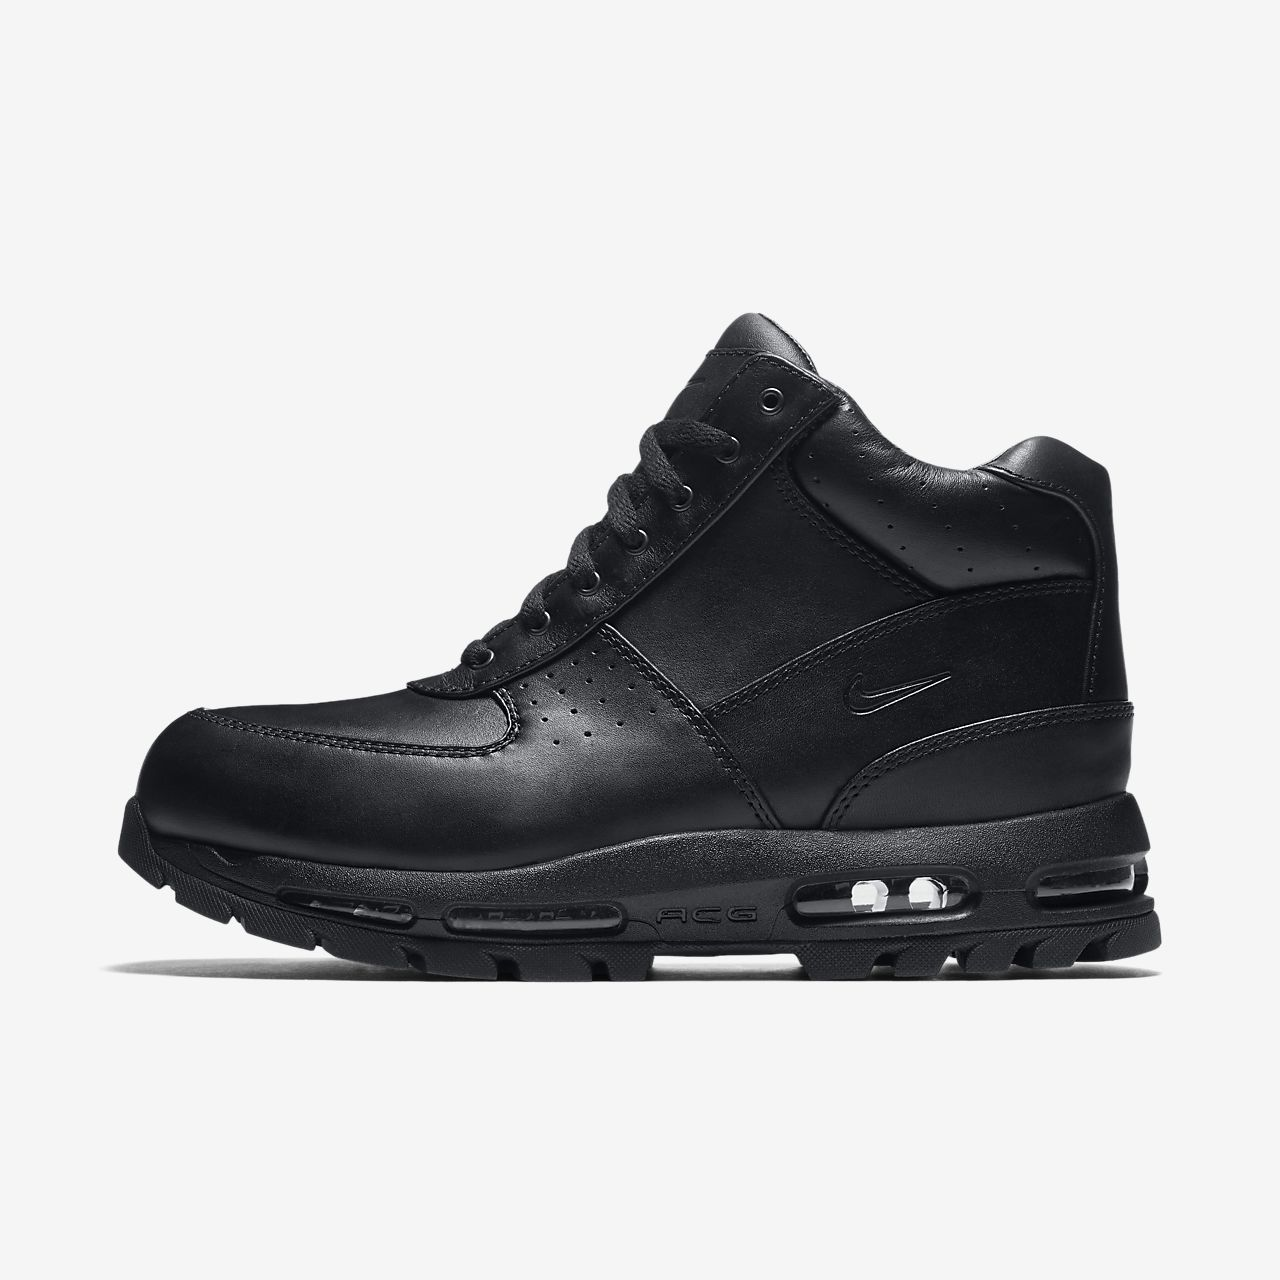 Nike Air Max Goadome Men's Boot | Kick Game | Pinterest | Air max and Mens  boot